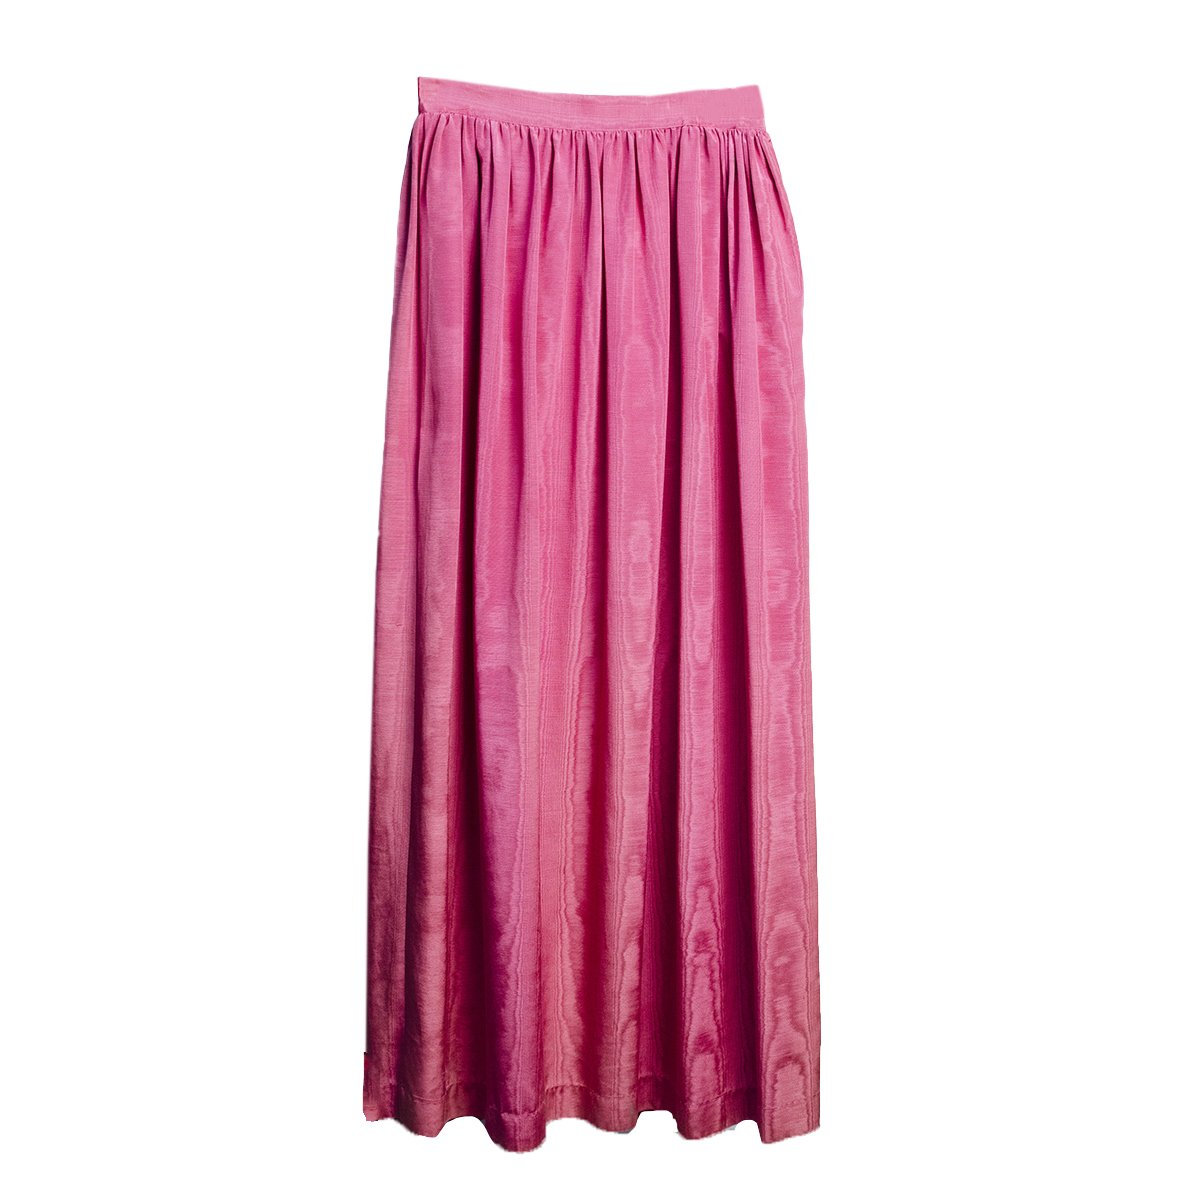 Ladies floor length skirt